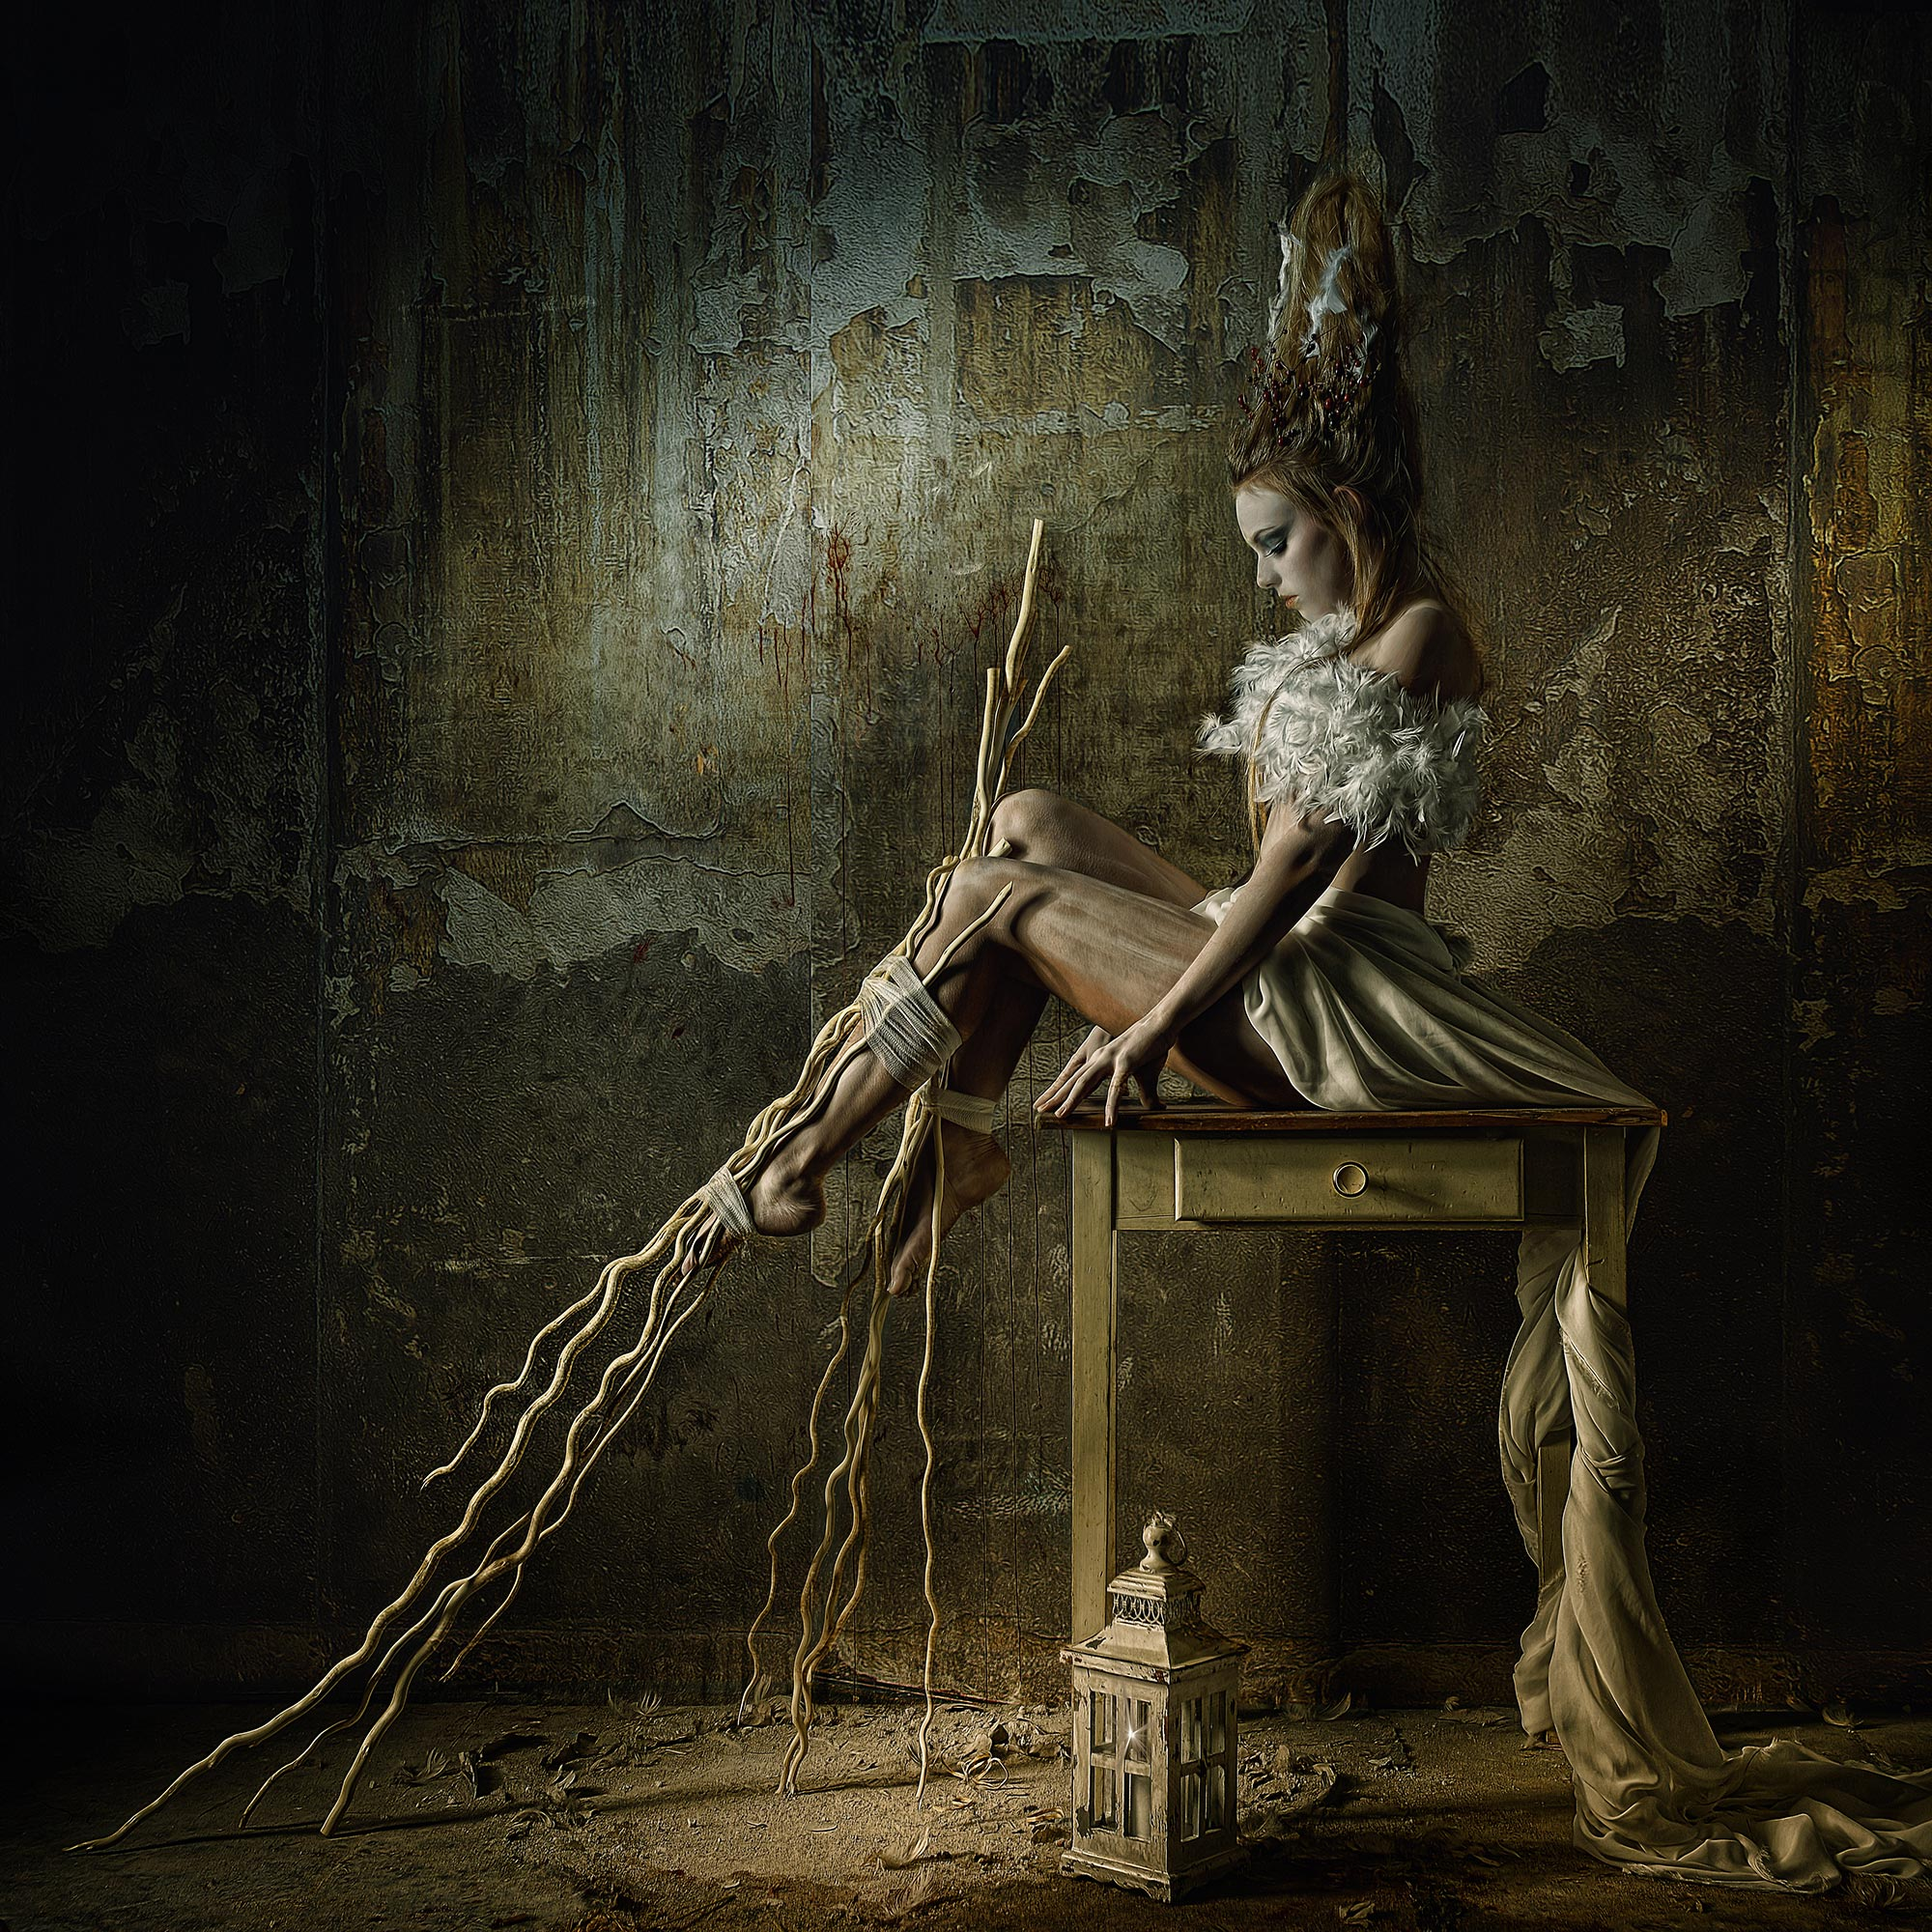 Dark Fantasy and Industrialism in Stefan Gesell's Otherworldly Portraiture